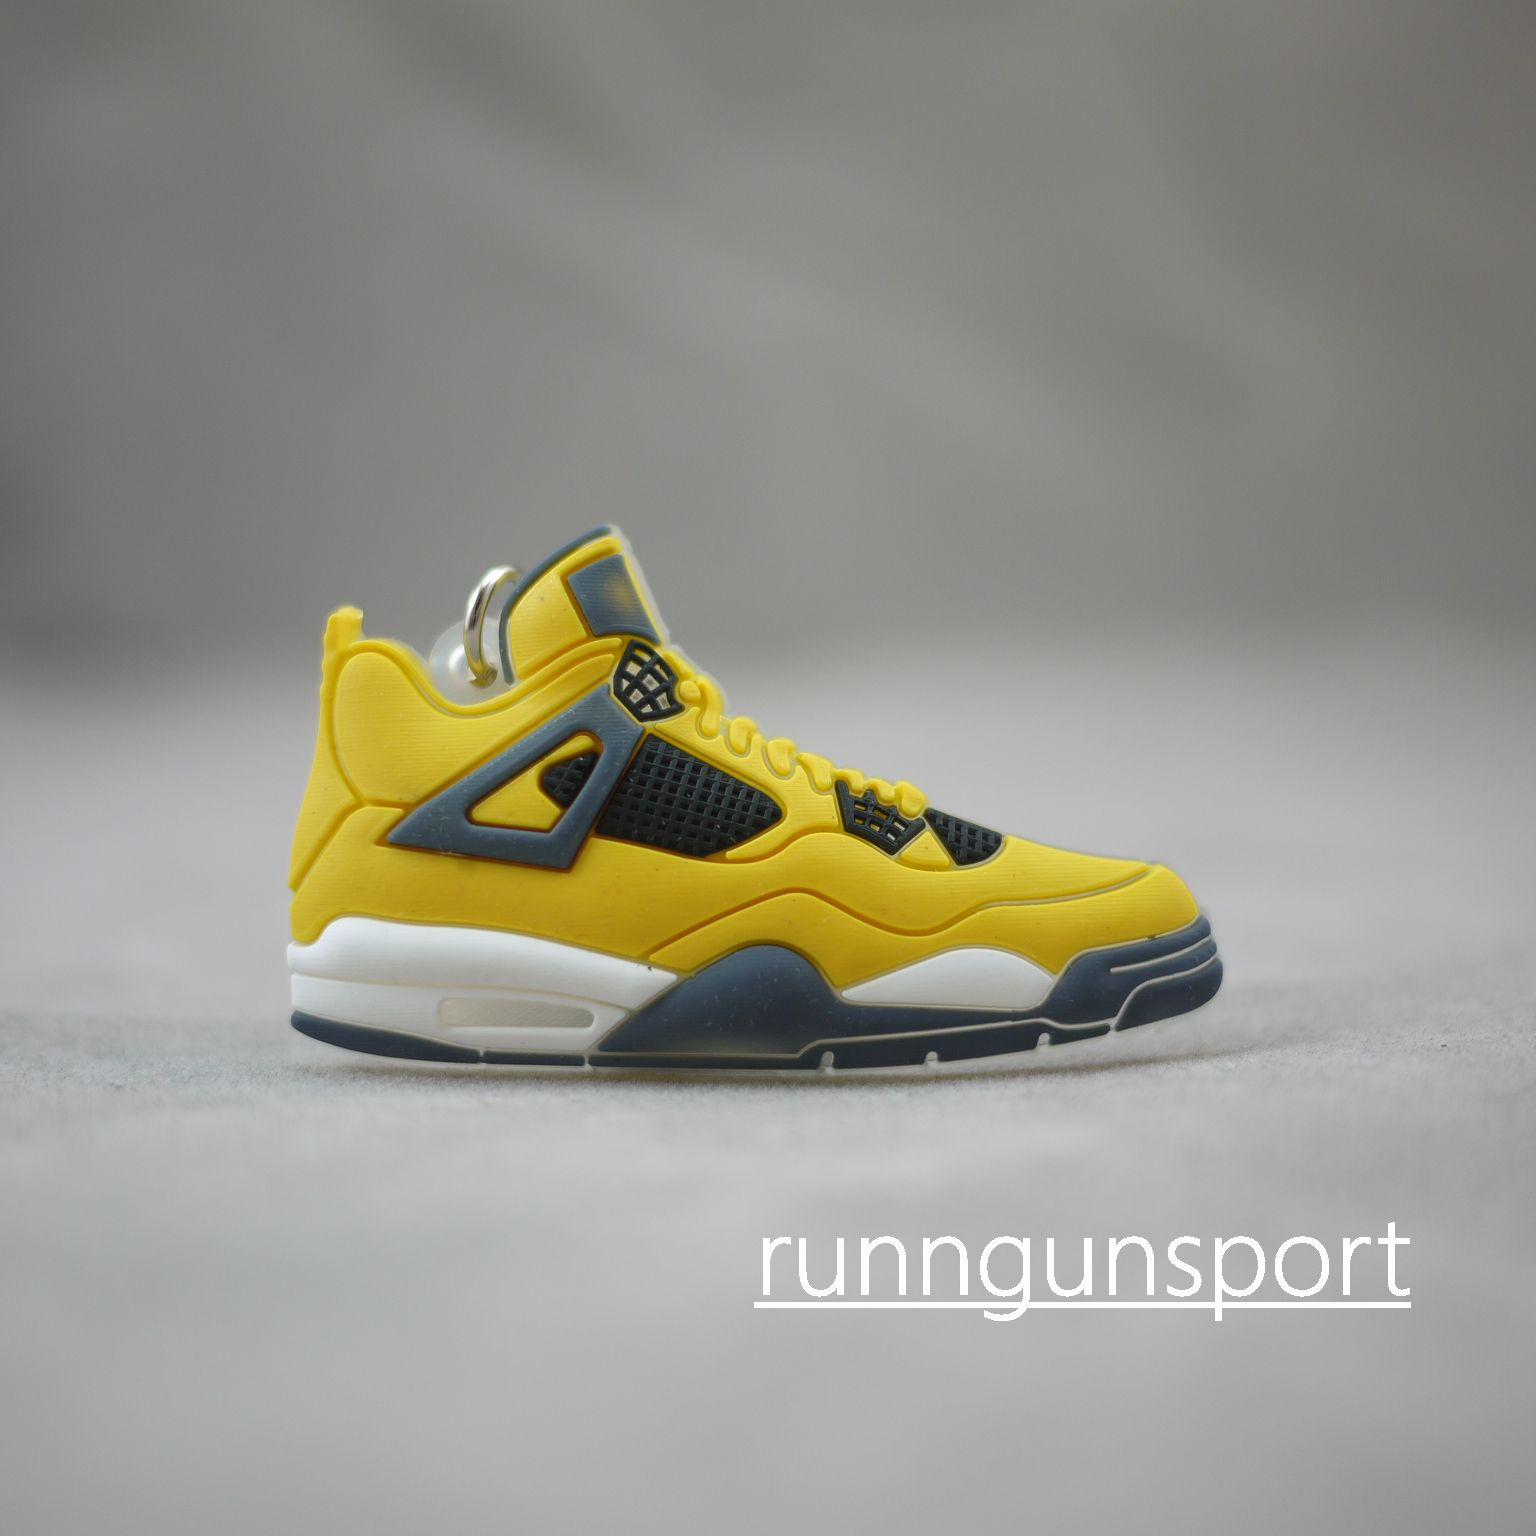 online store 13b6e dc3f9 ... Air Jordan IV (4) LIGHTNING THUNDER YELLOW Key Chain ...